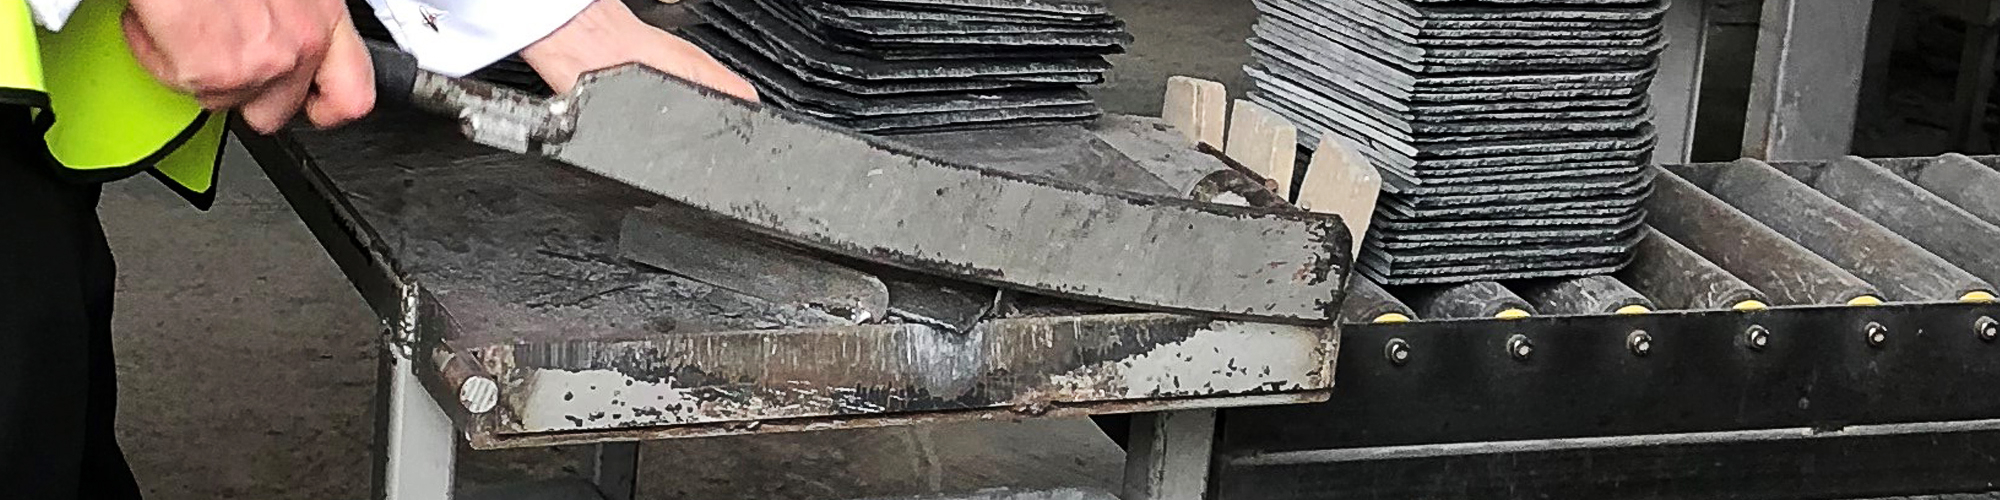 slate cutting, roofing slate, roof slate, roofing chestyer